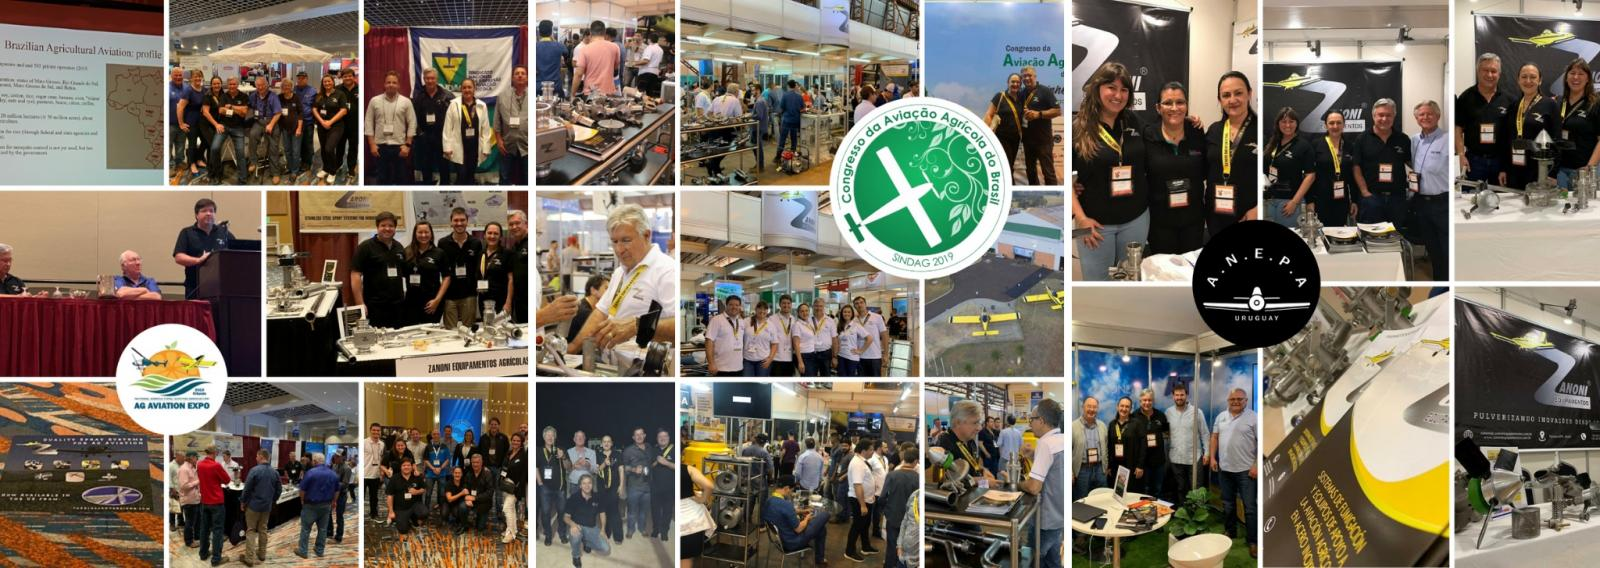 Ag Aviation Conventions in 2019